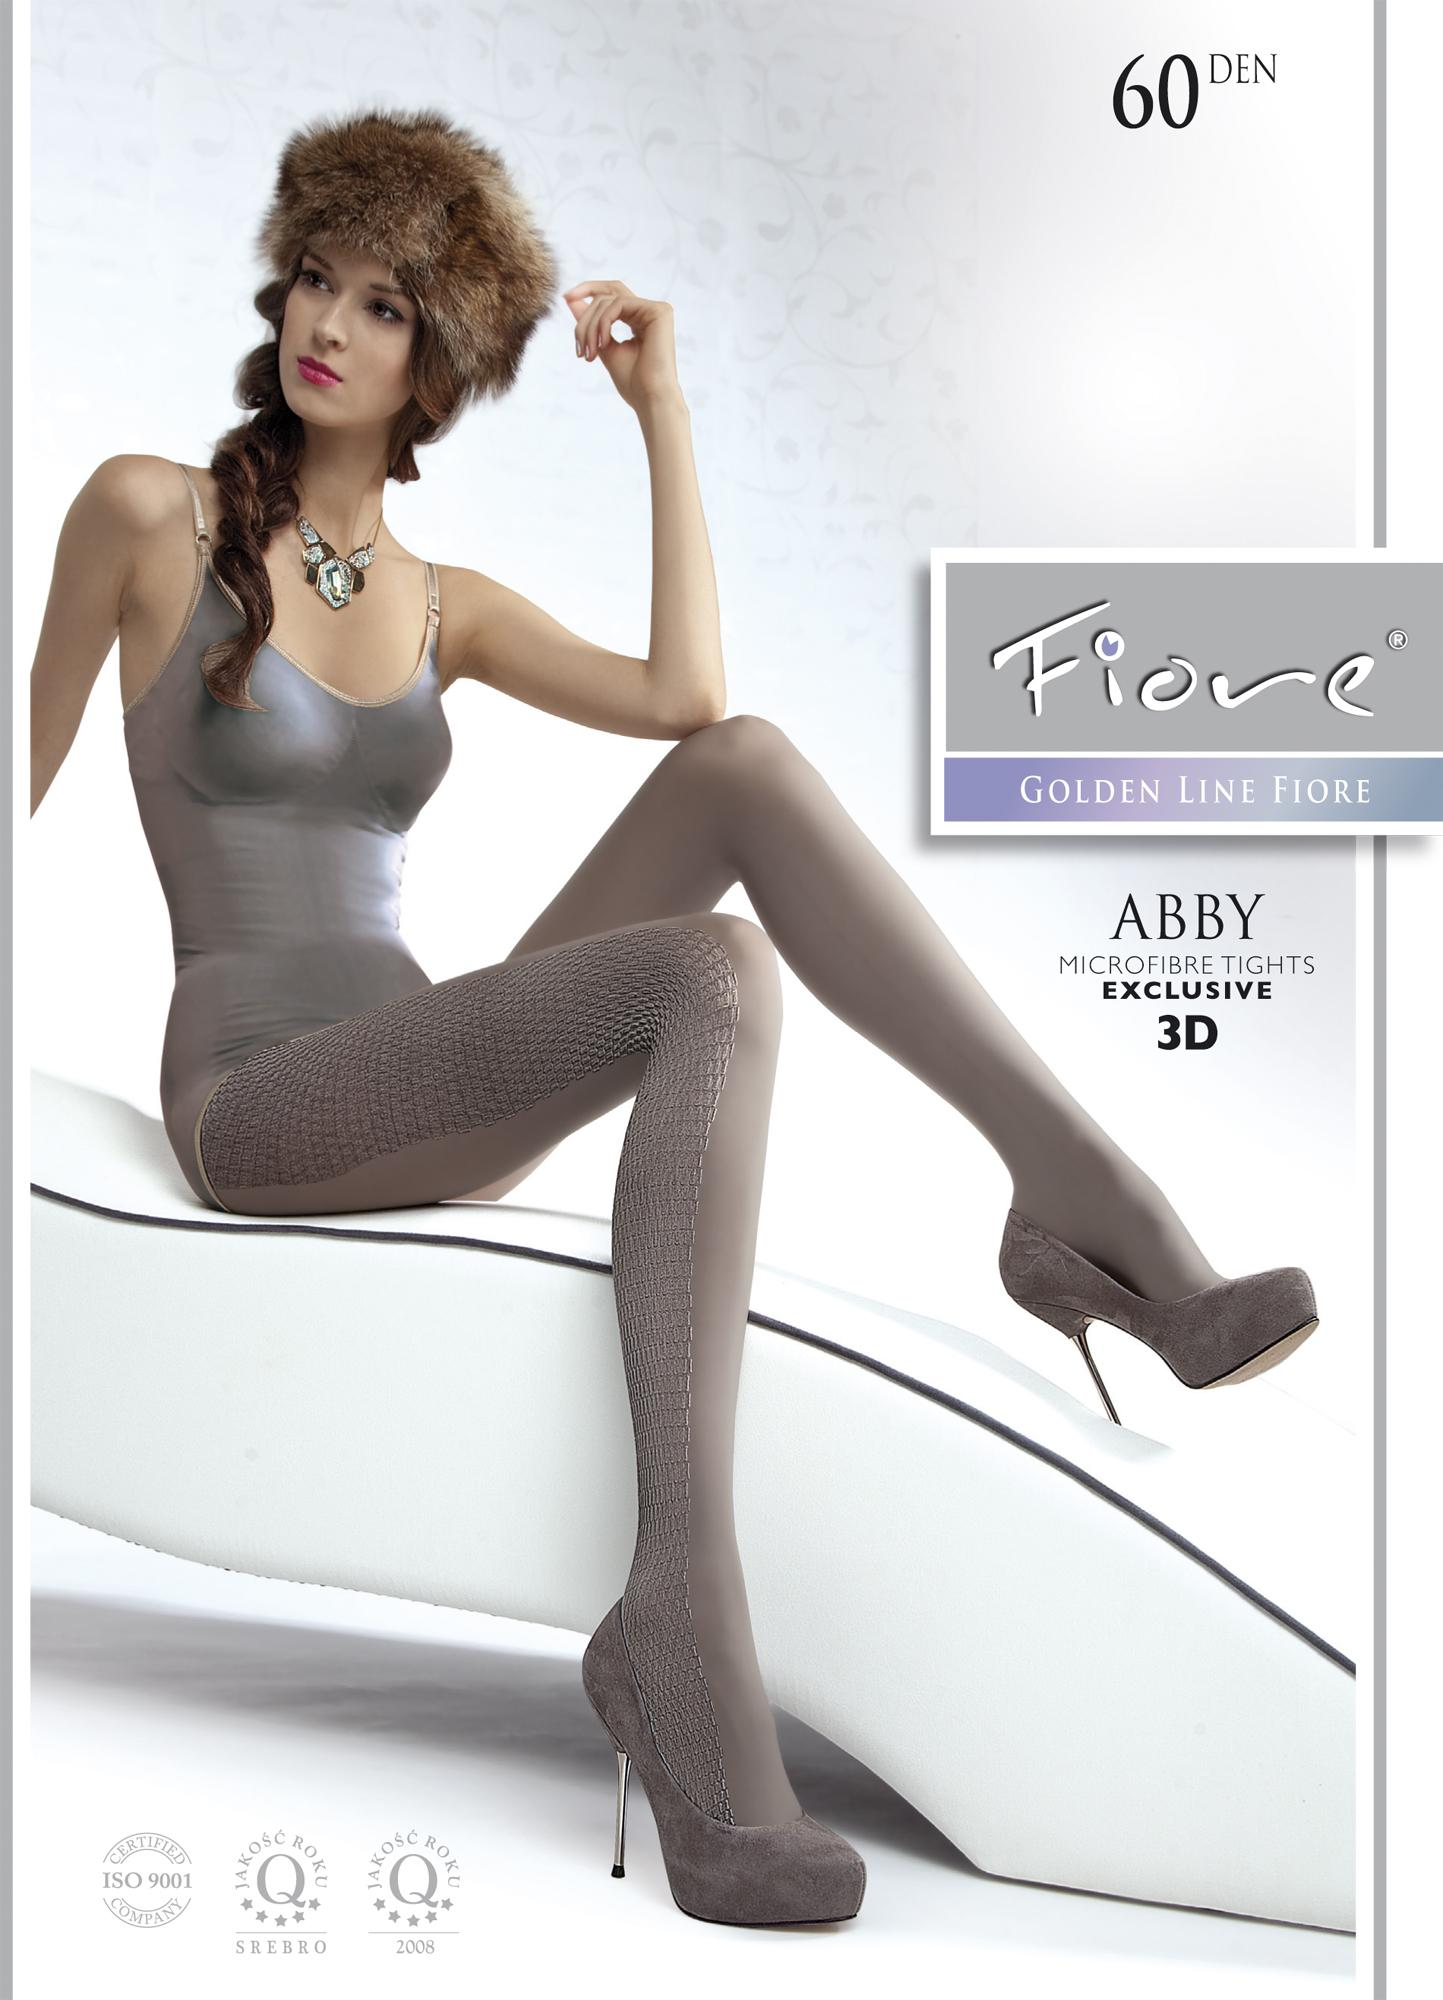 ABBY 60 den microfiber tights Fiore hosiery sale